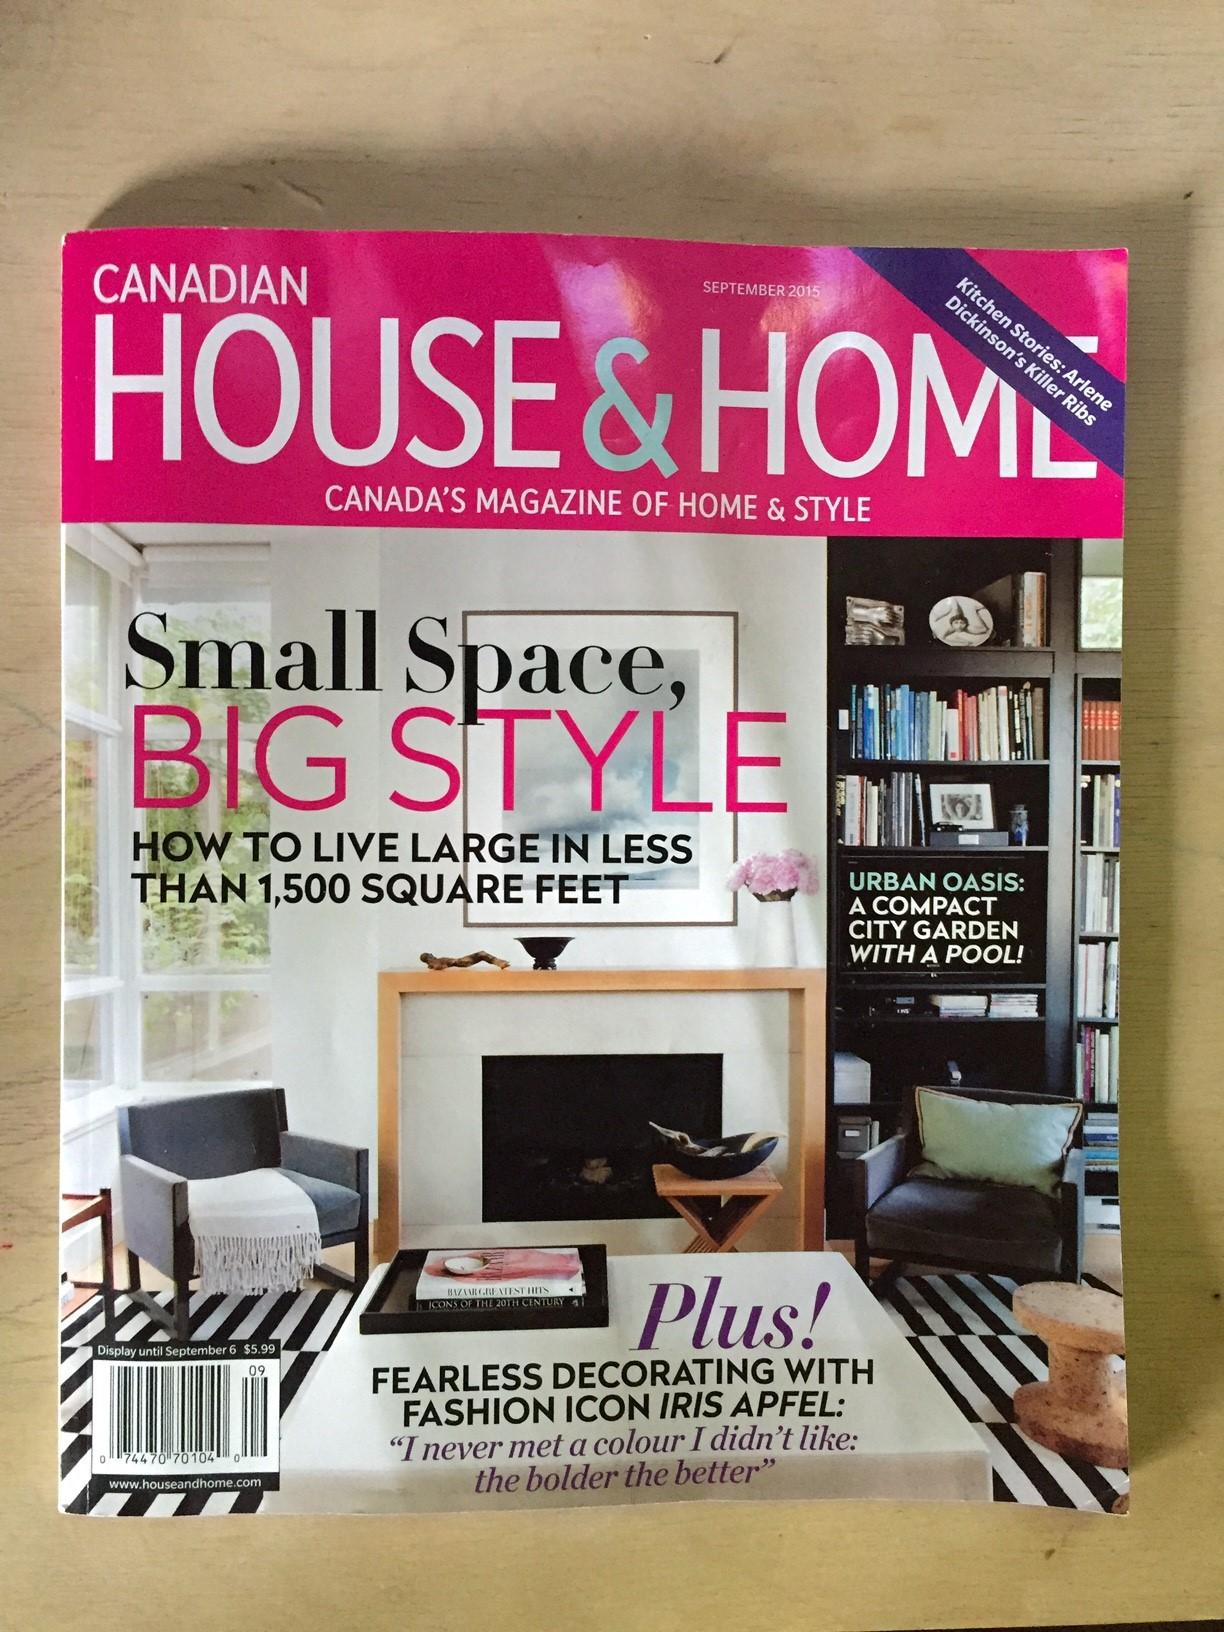 And that's what H&H looks like for September 2015